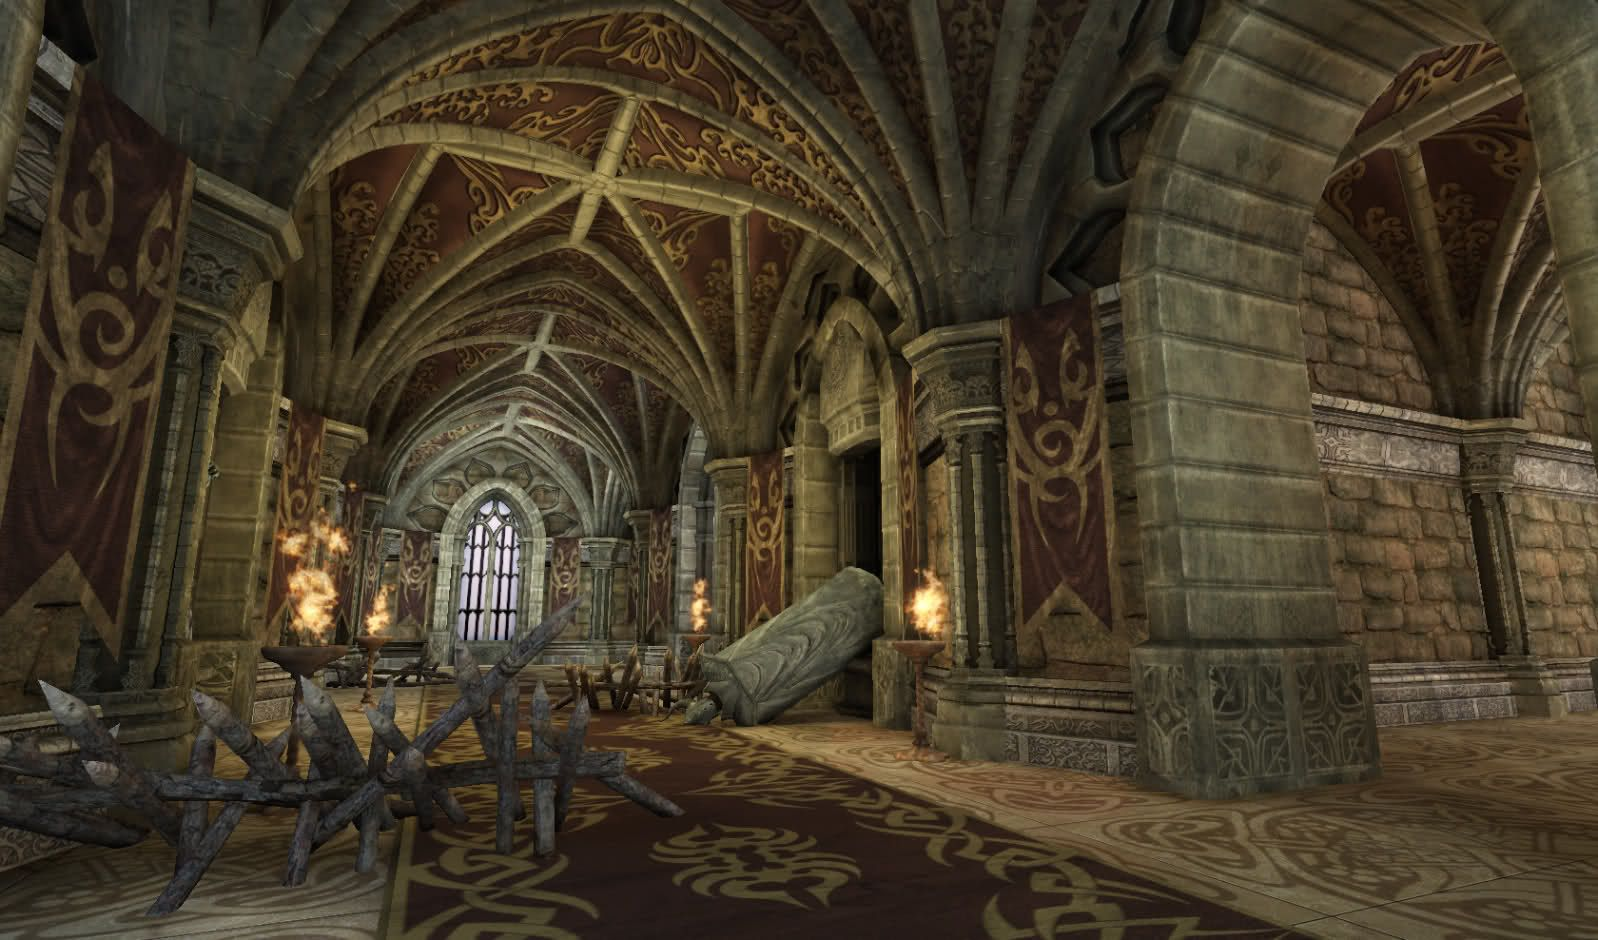 Hey Guys Here Are Some Early Shots Of A Castle Interior